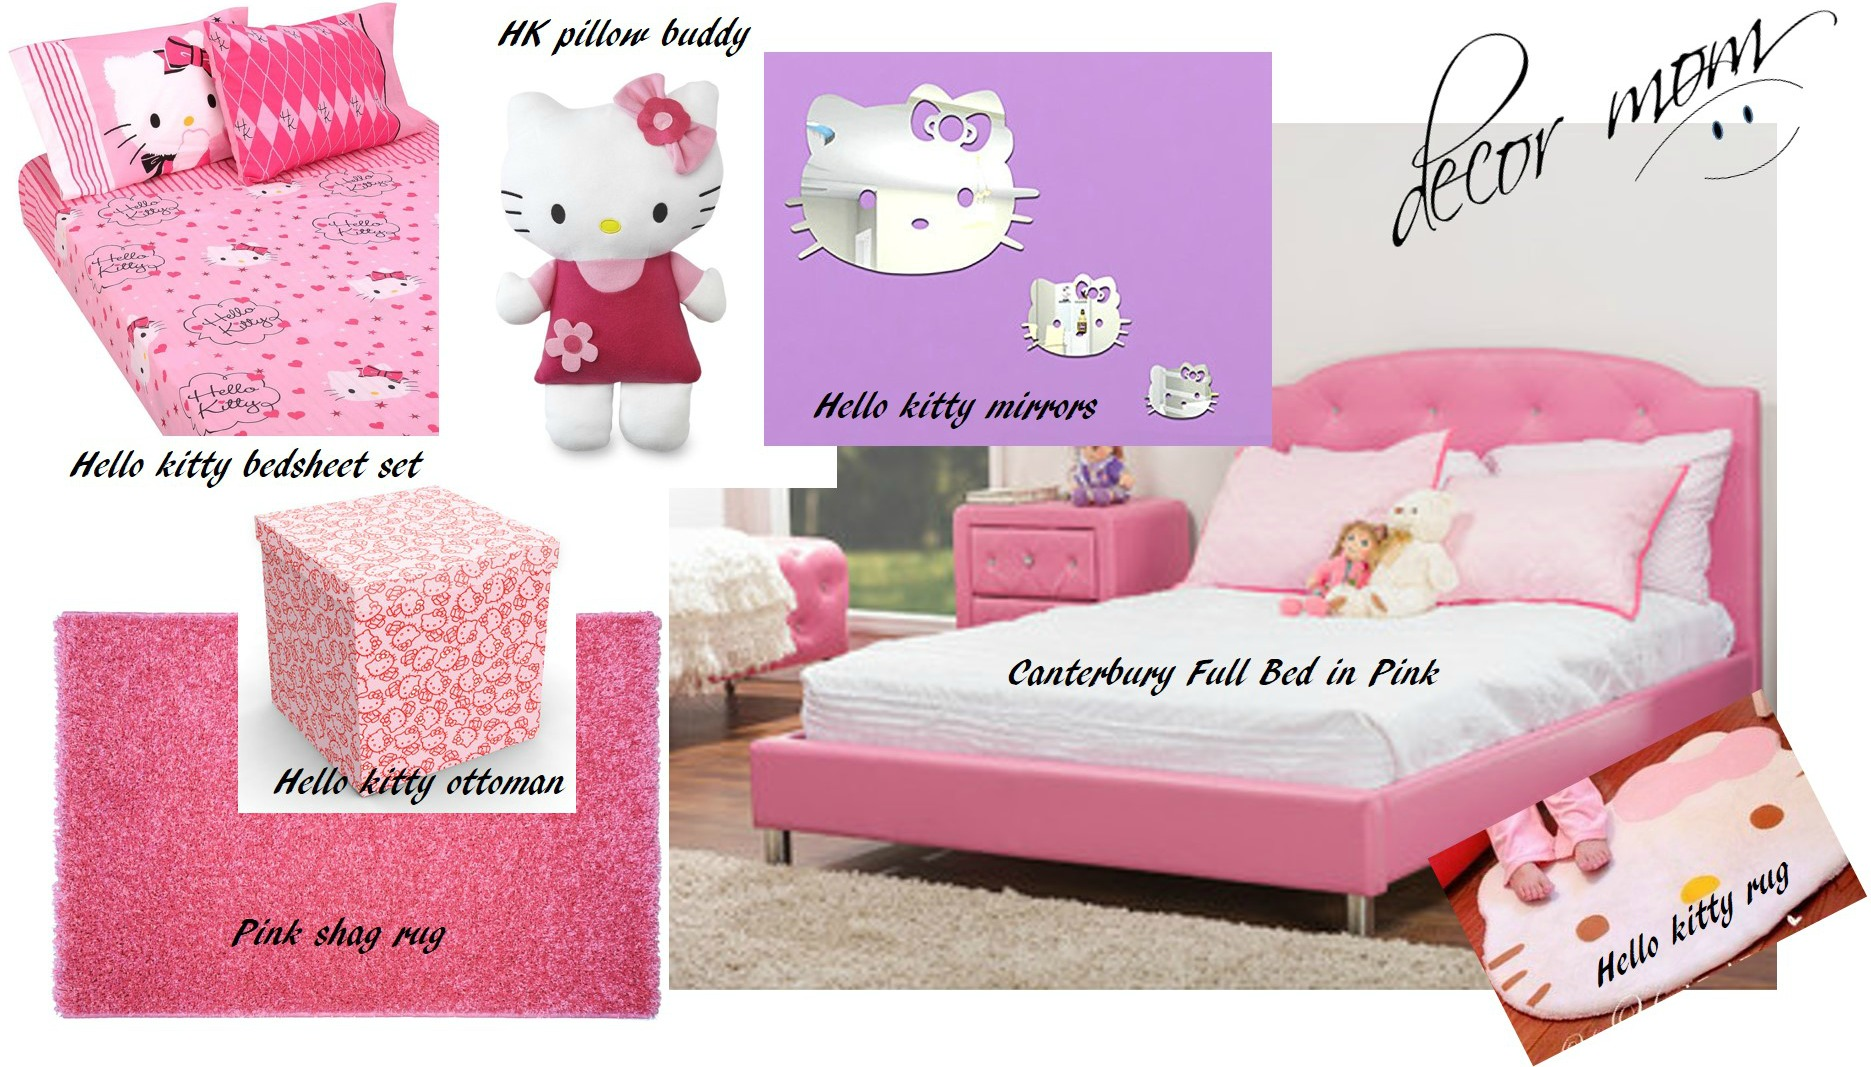 Hello Kitty Bedding - Vision Board 2 - Teens